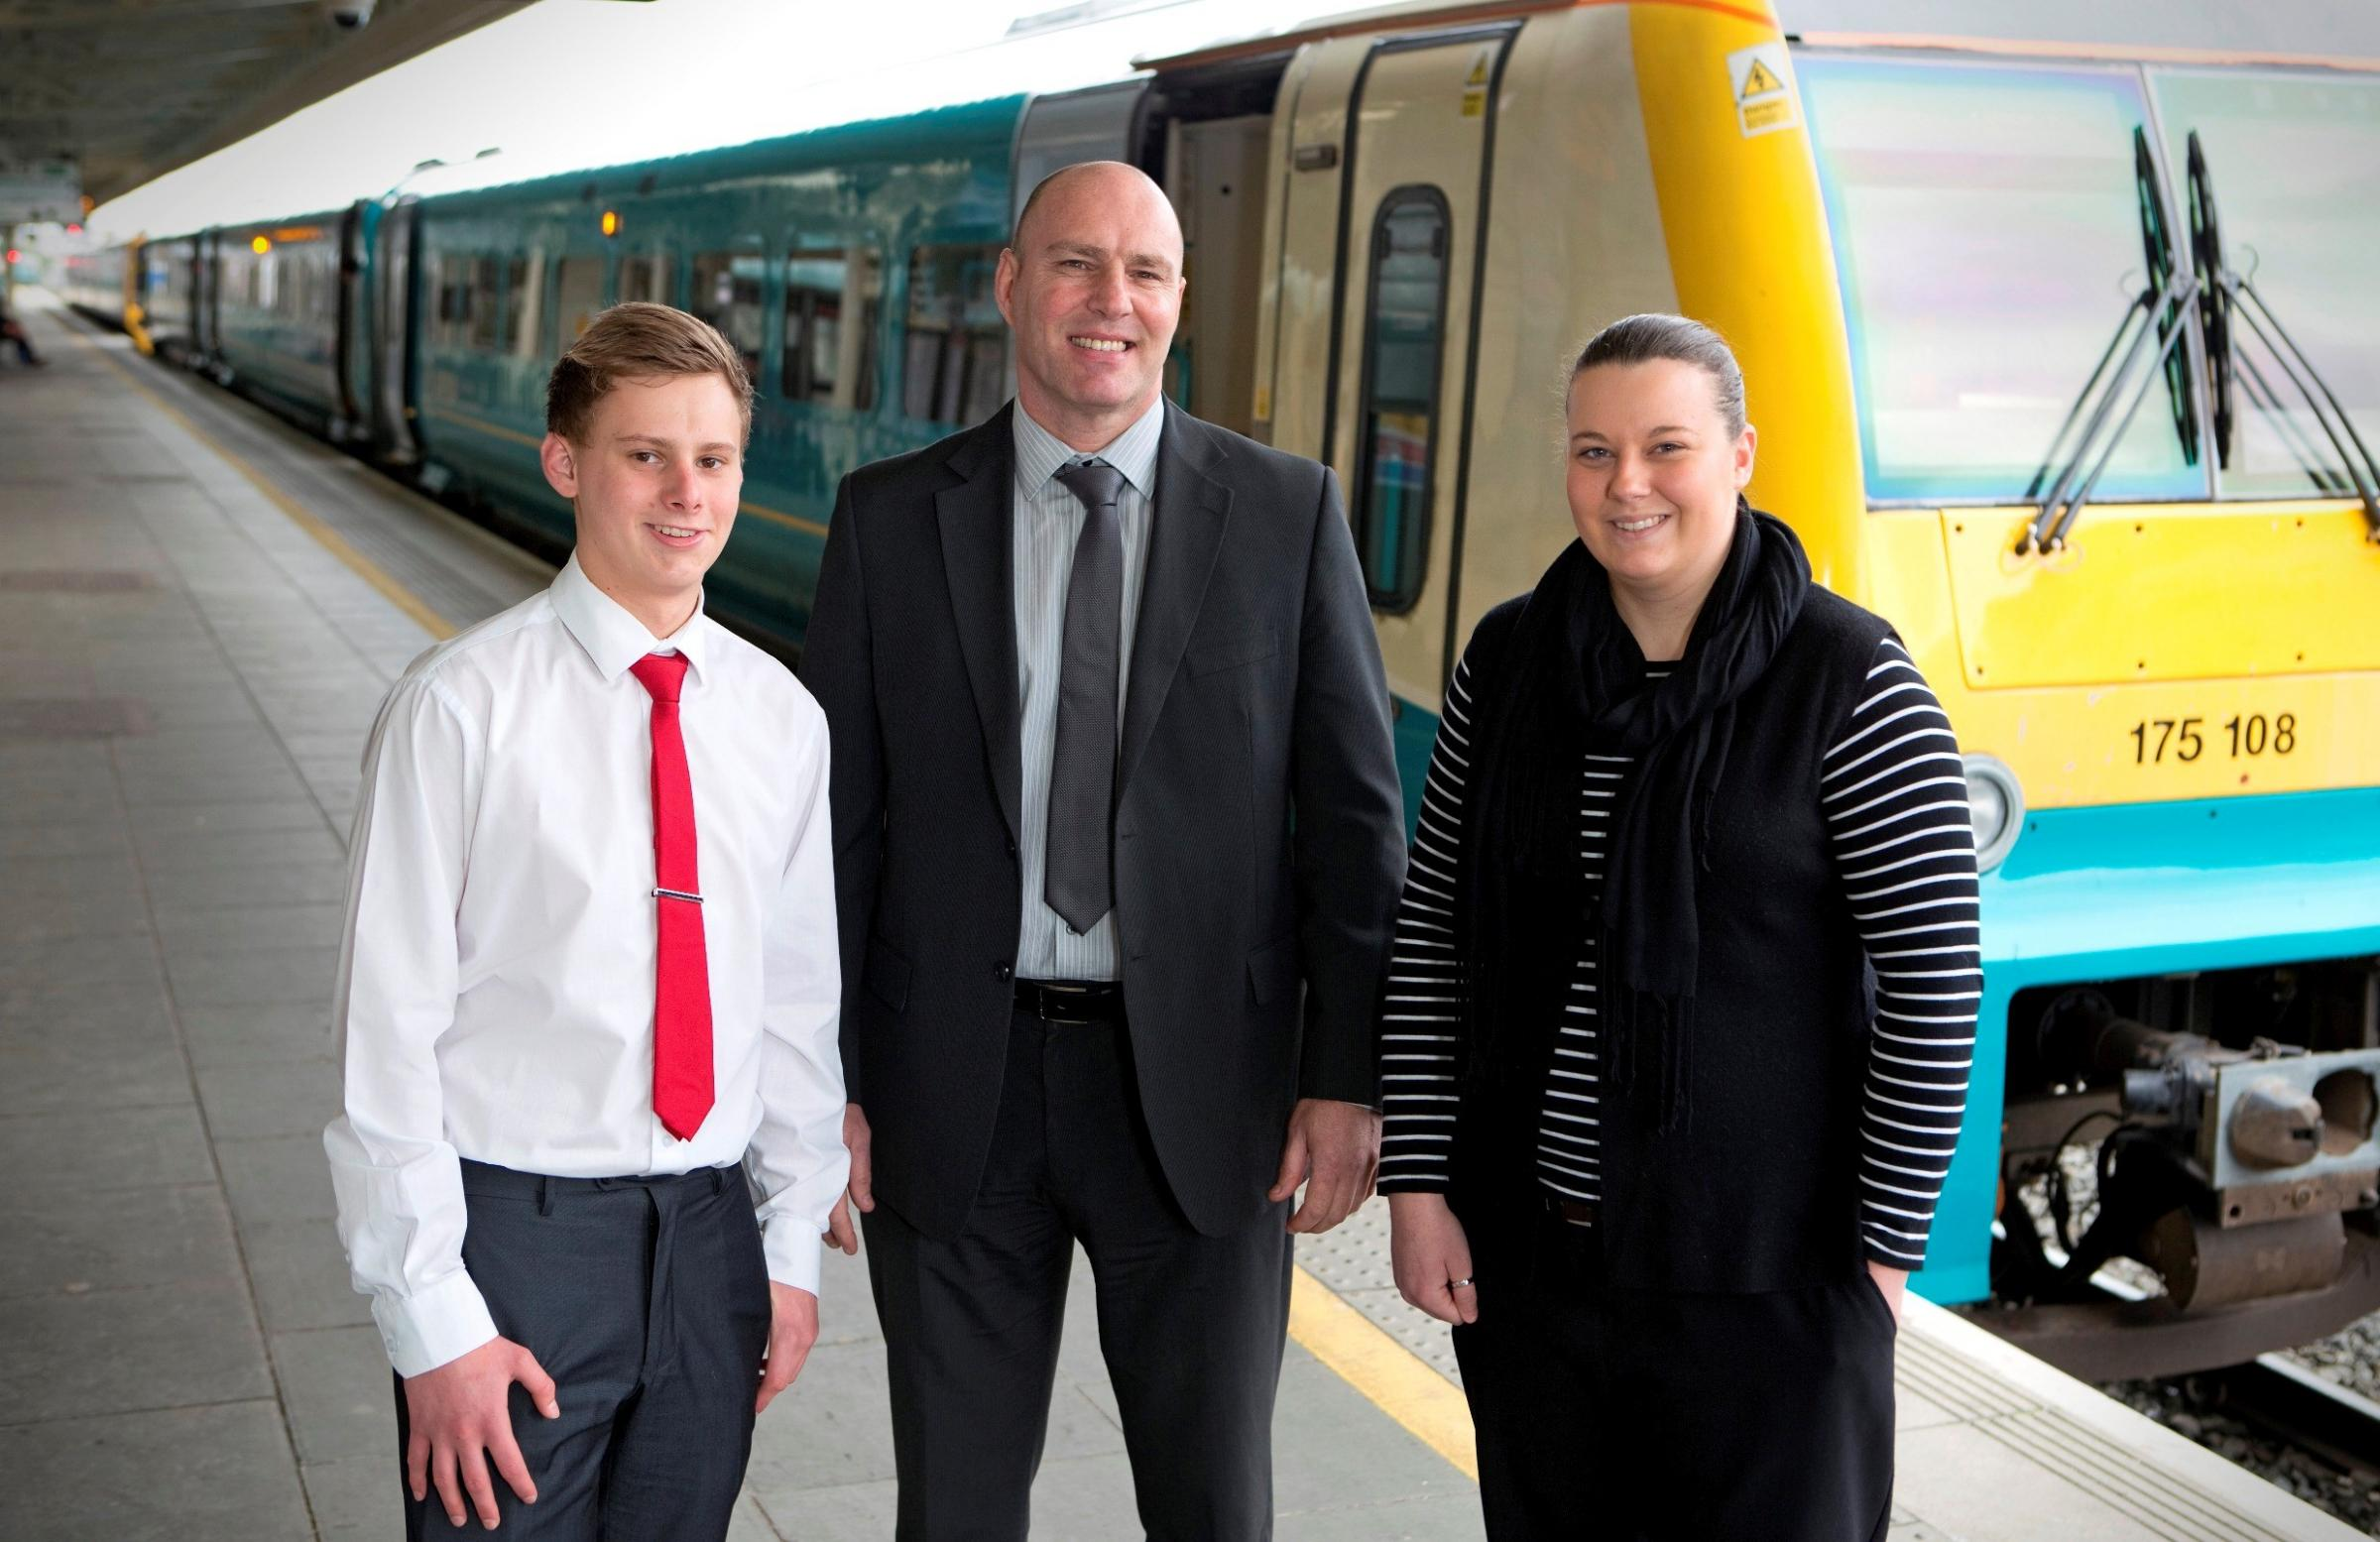 ARRIVA: Michael Bond, Steve Badock and Alexis Powell